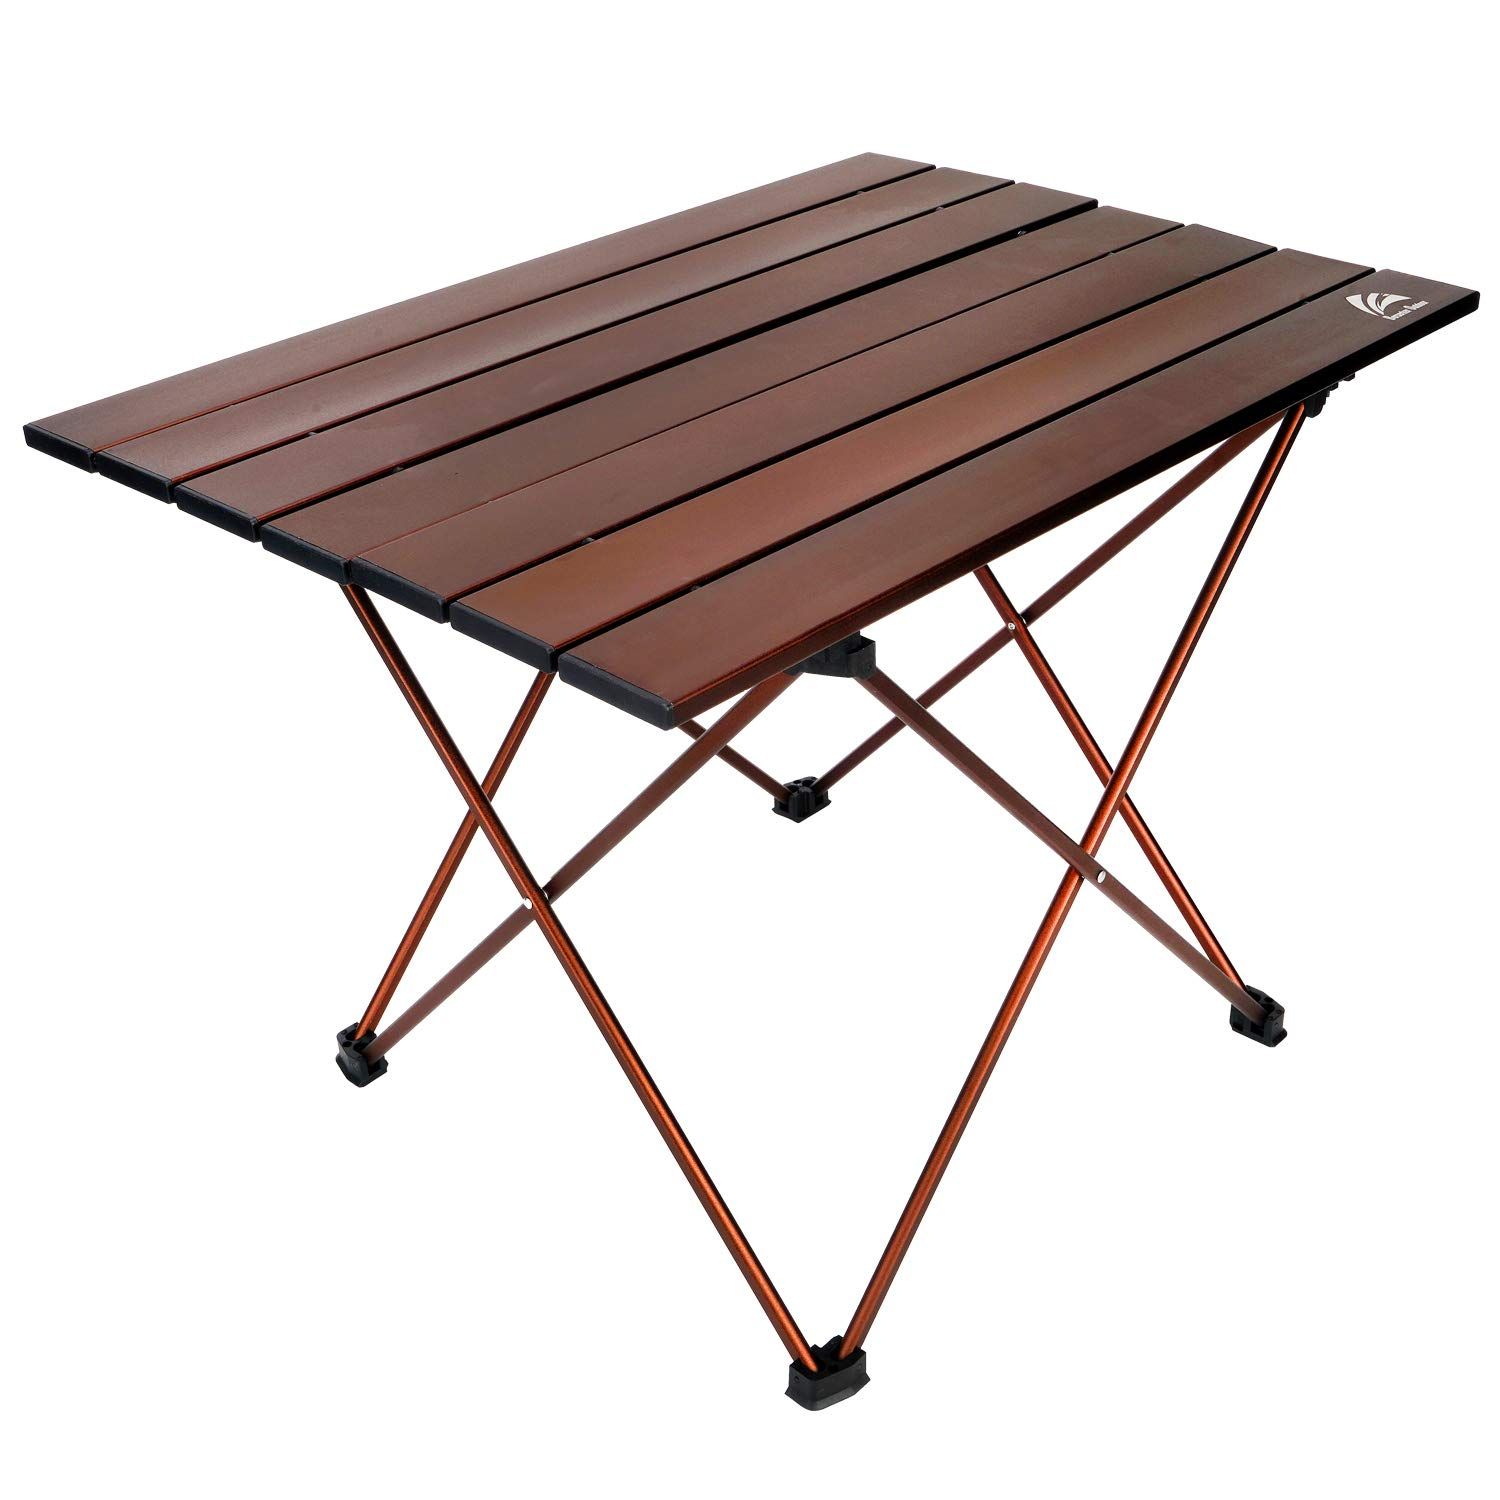 BERSERKER OUTDOOR Portable Camping Table Folding Medium Size Aluminum Table Lightweight Compact Roll Up Table Top with Carry Bag, Set Up 22 L x 16 Wx 16 H for BBQ,Beach,Picnic, Home Use